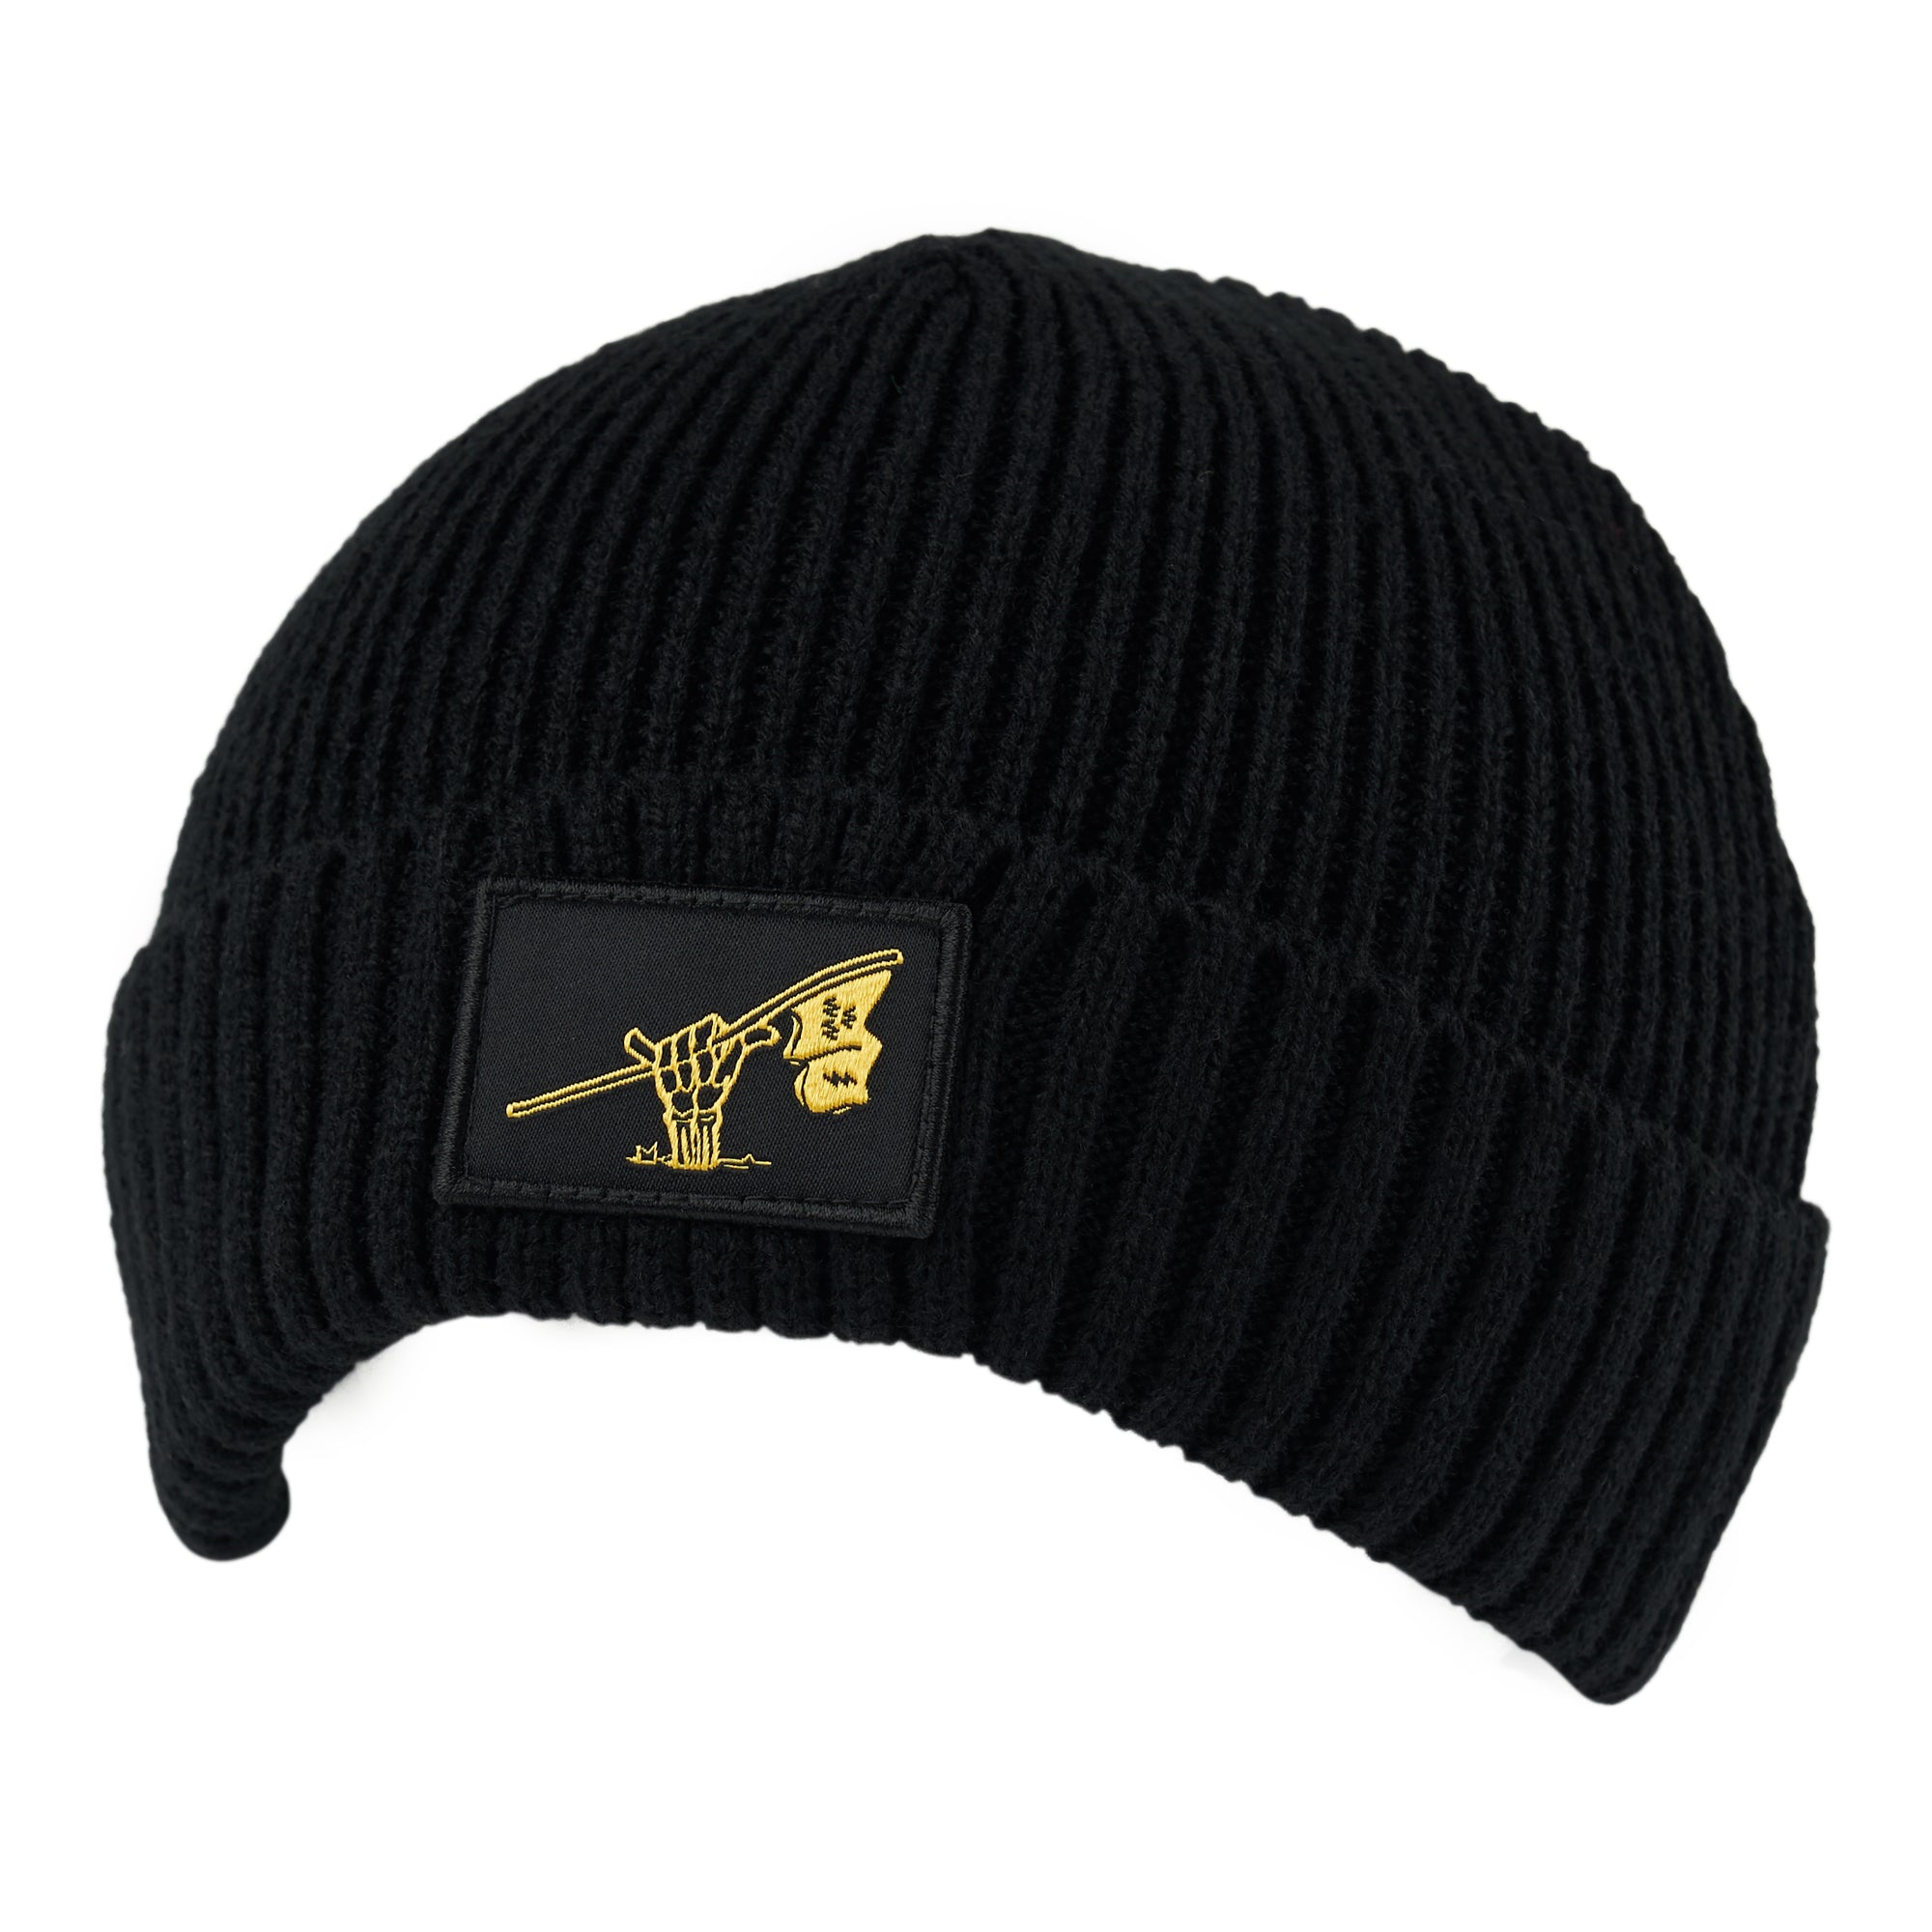 birds-of-condor-electric-black-beanie-flag-raiders-golf-hat-front